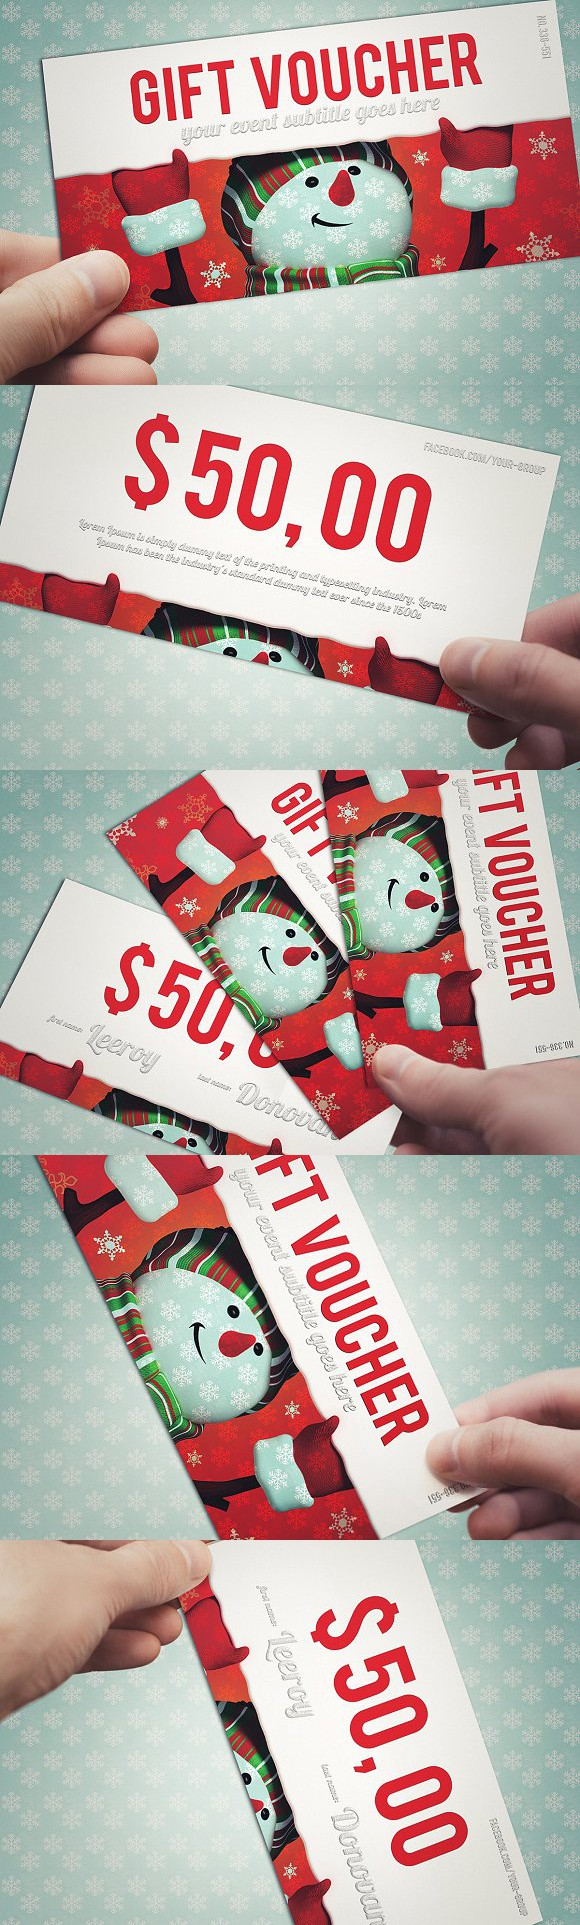 christmas gift voucher christmas gifts gift voucher design and christmas gift voucher gift voucher design templates 7 00